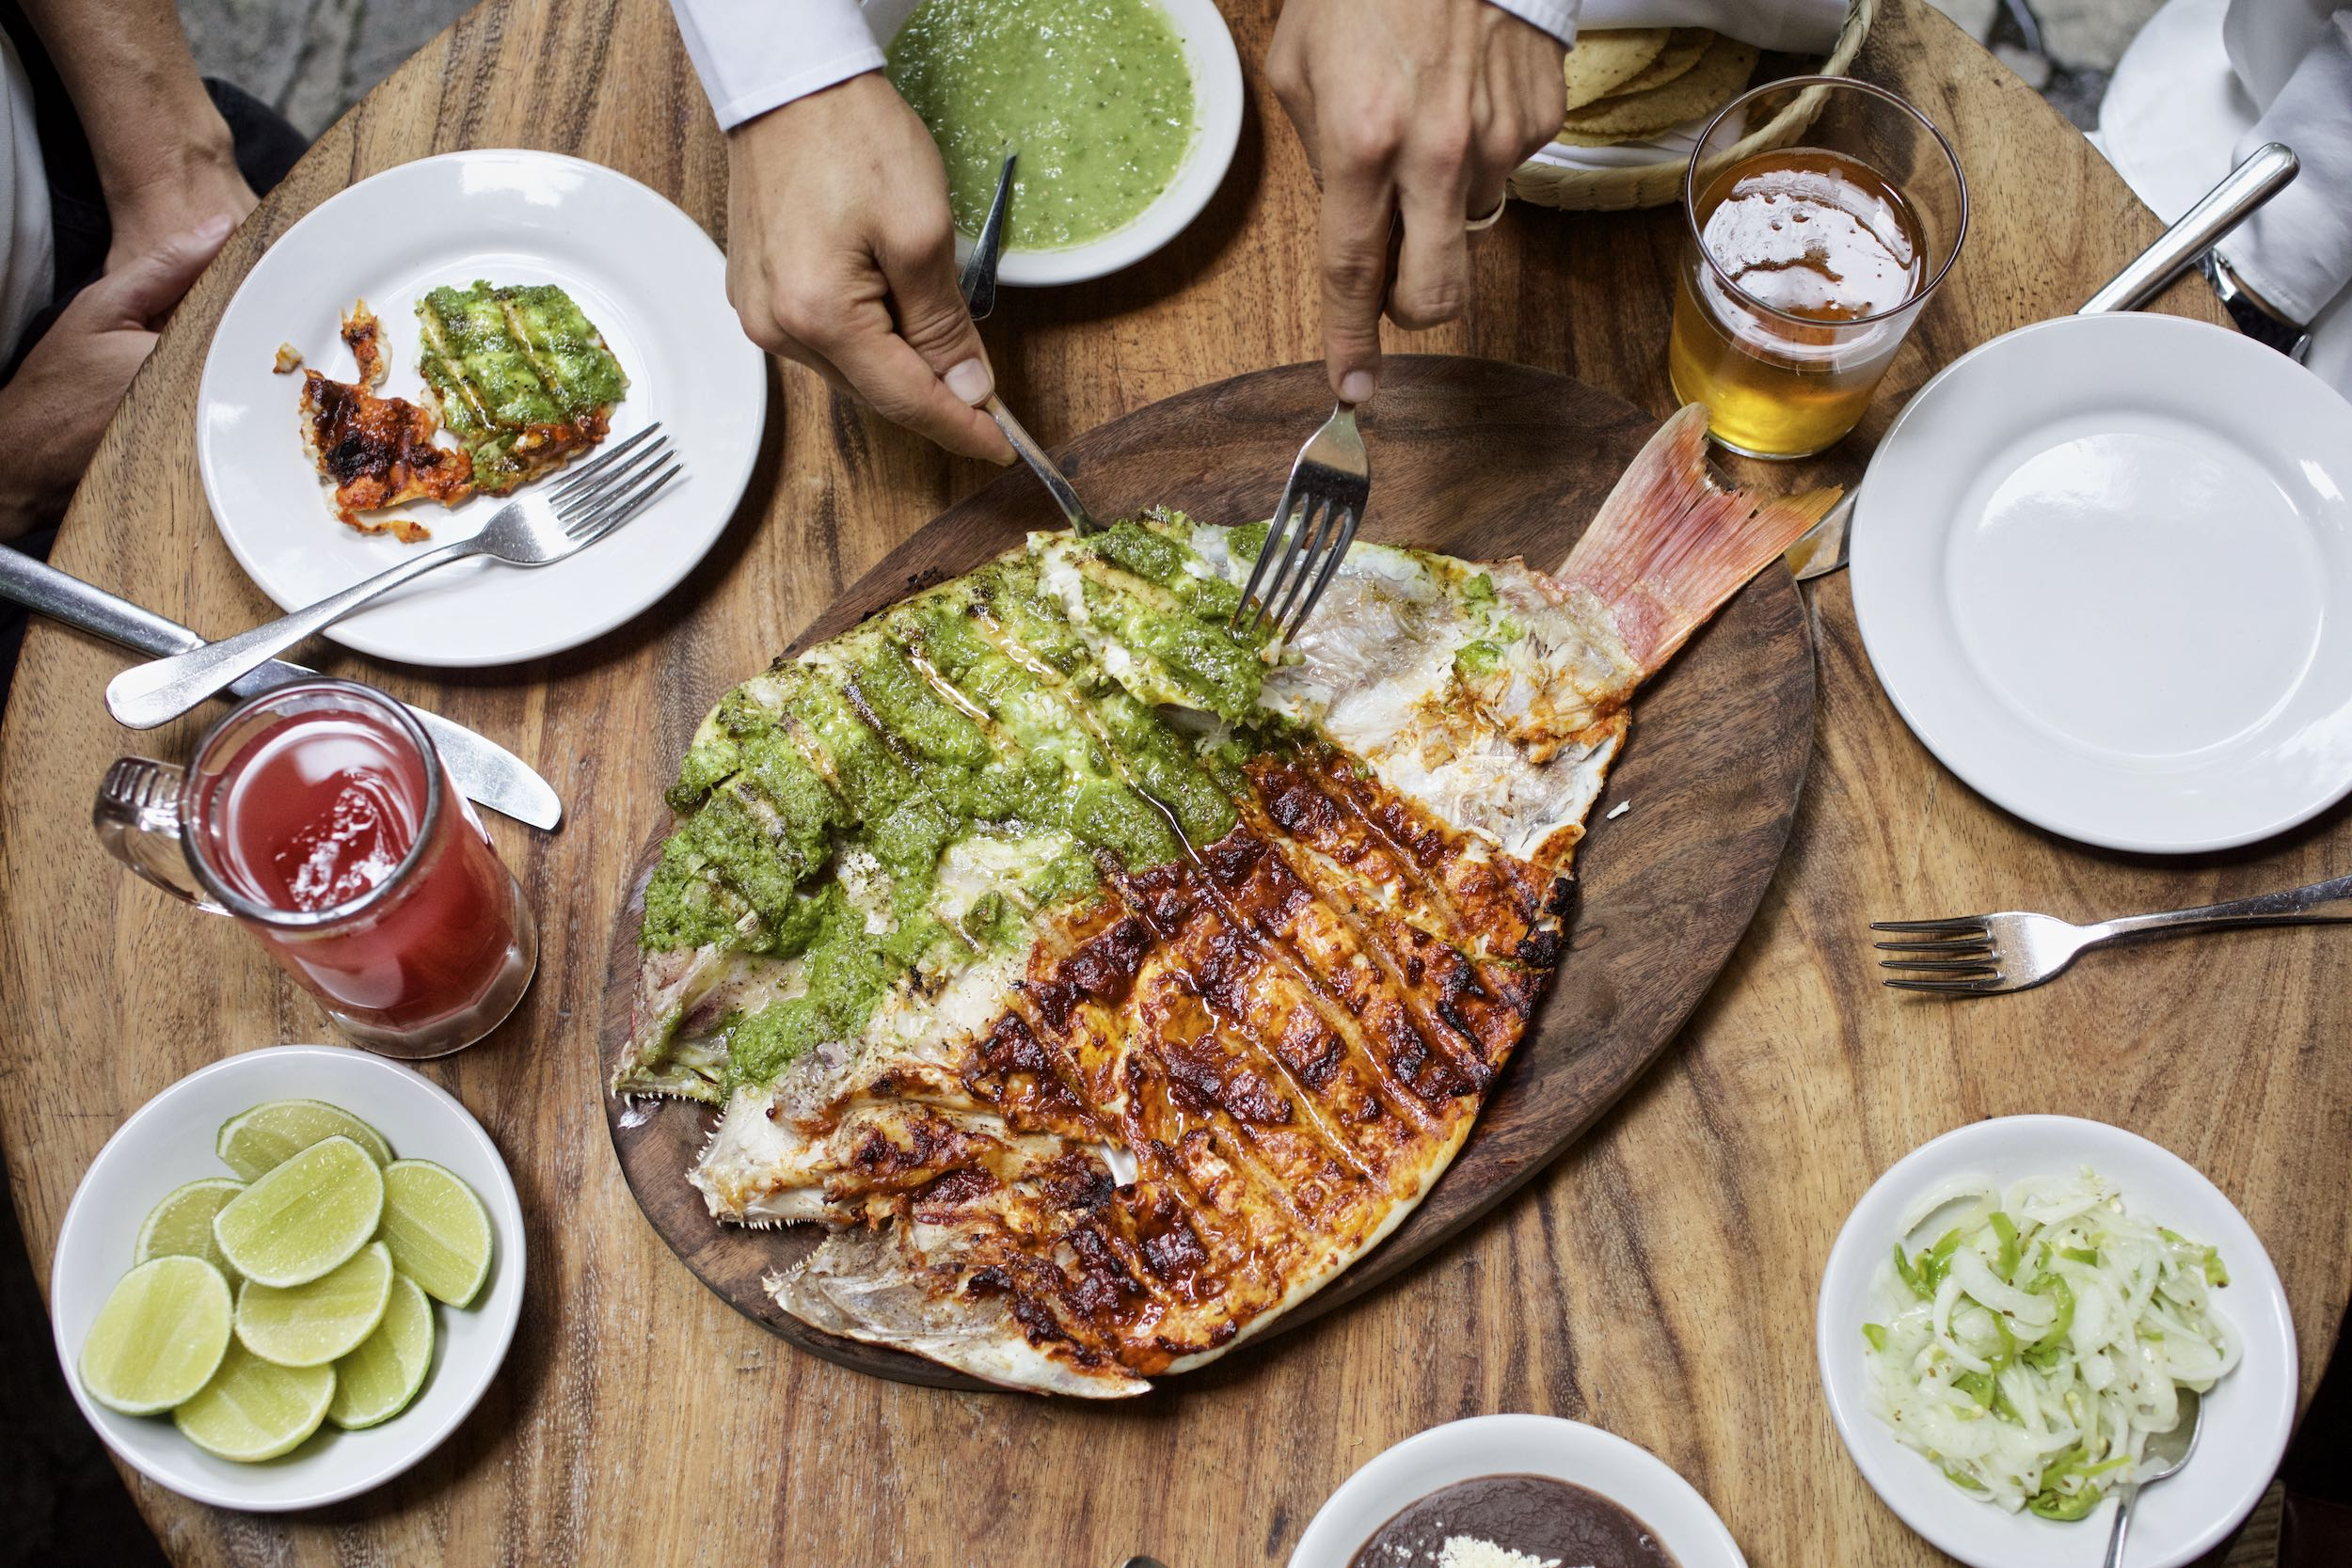 Jody Horton Photography - Mexico City dinner spread with cooked fish and beverages on a wood table.